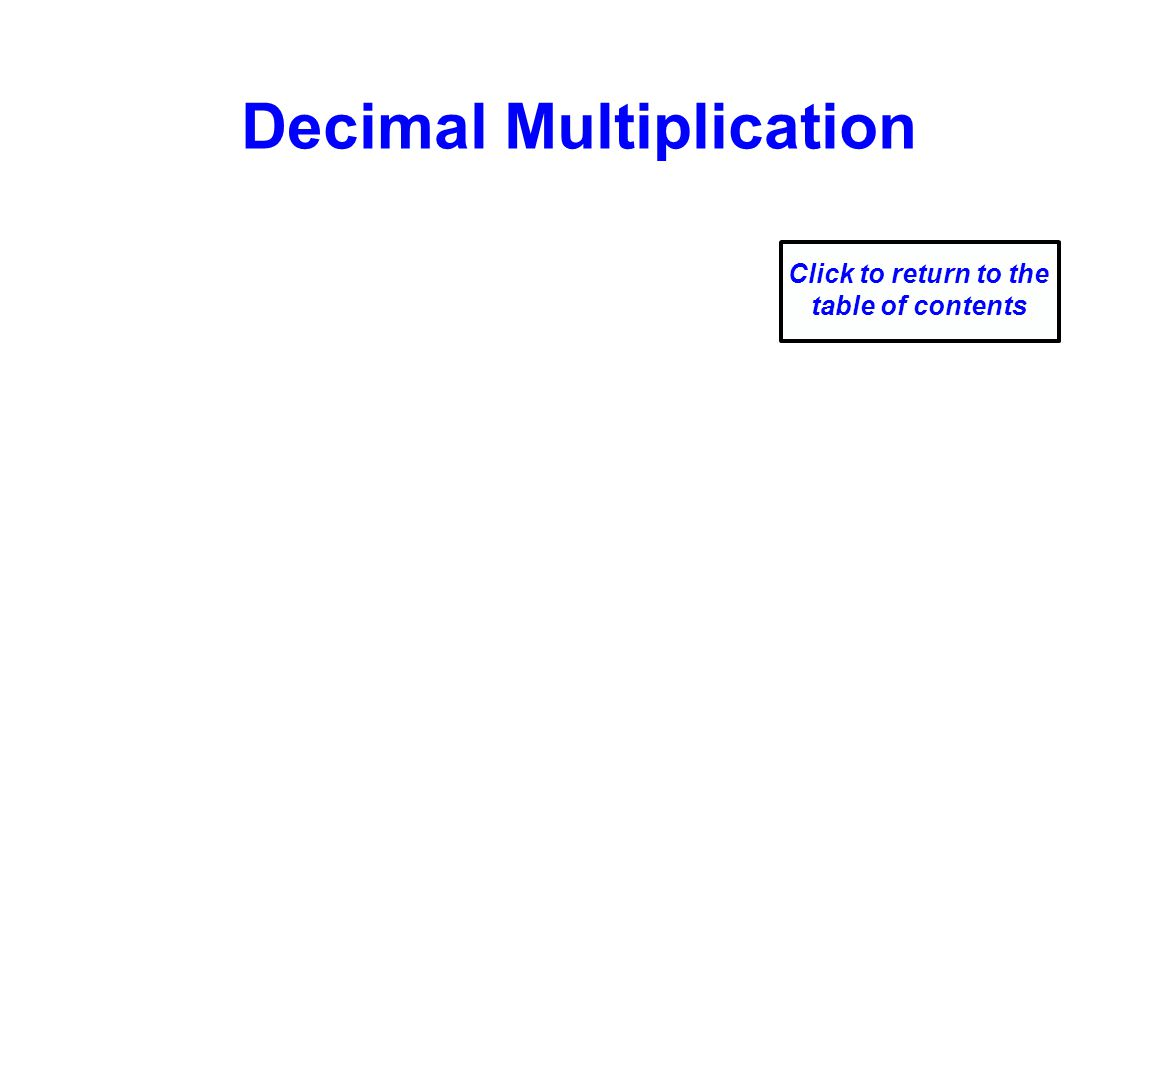 Decimal Multiplication Click to return to the table of contents